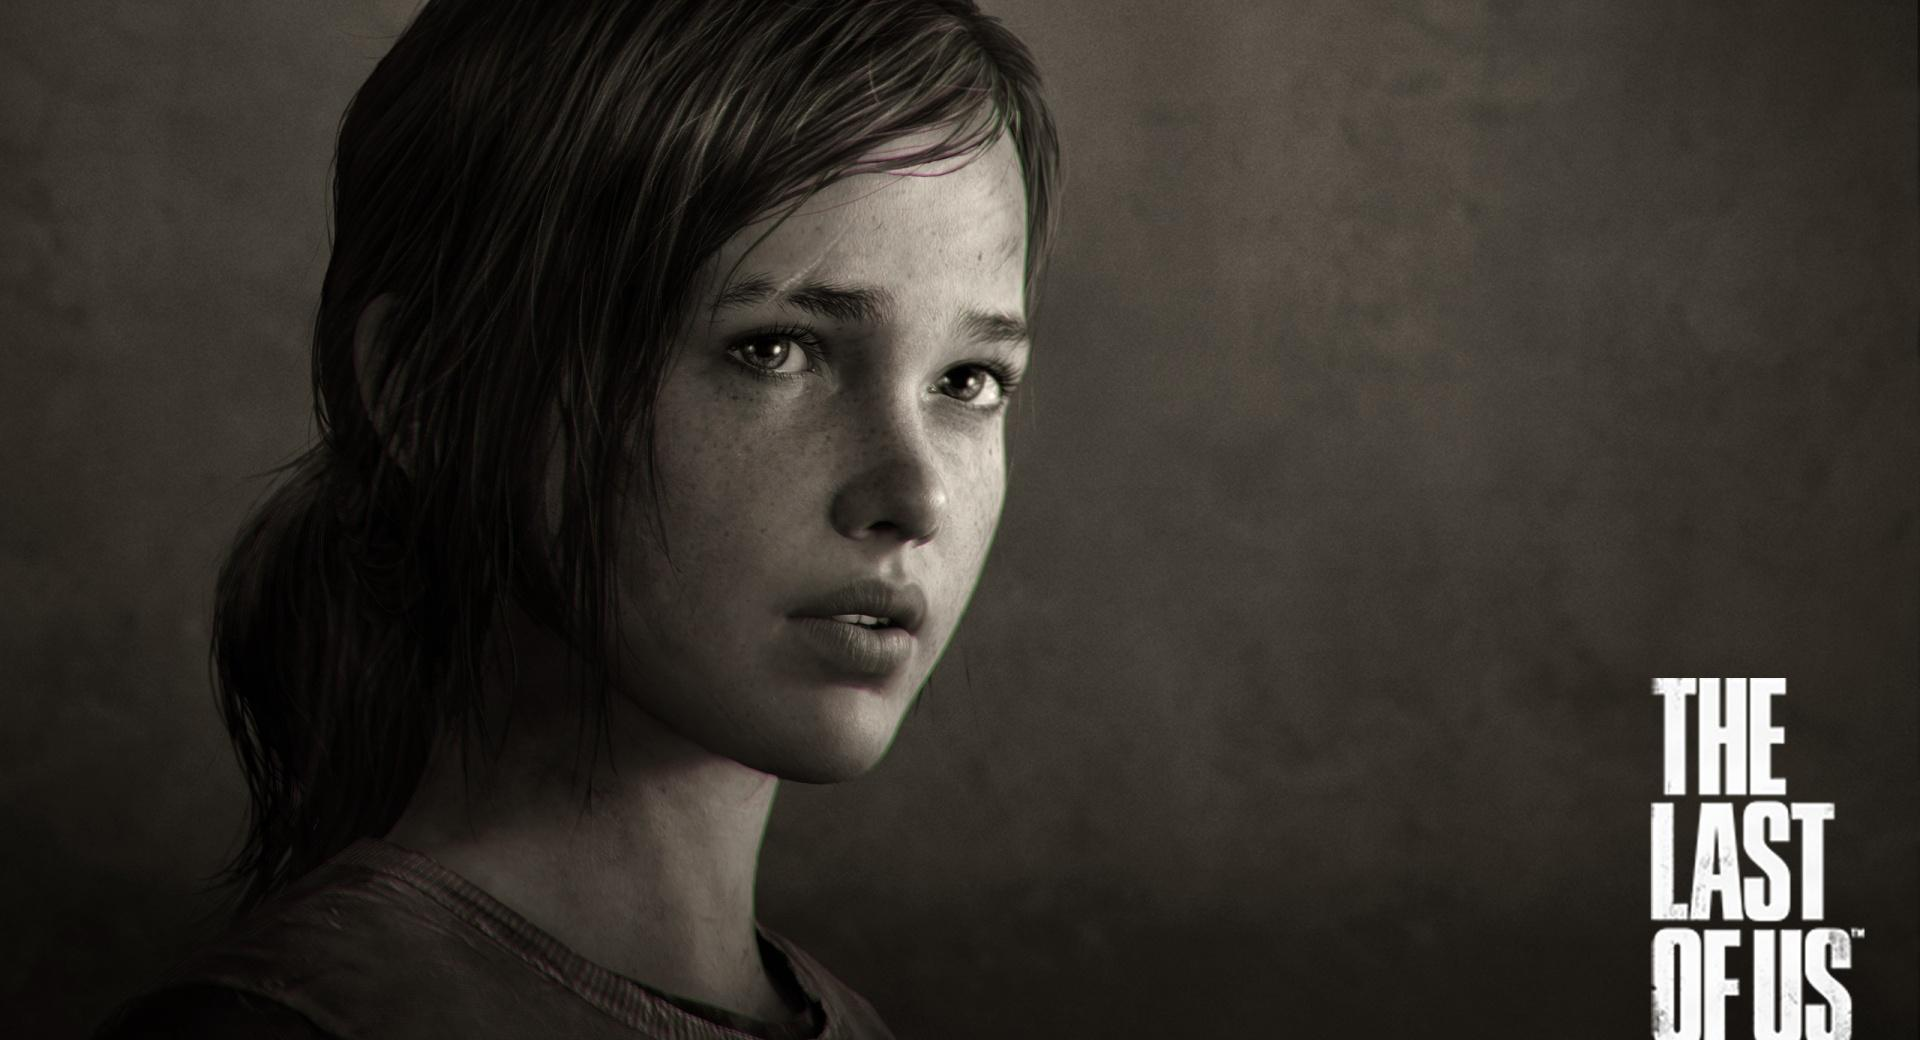 Ellie The Last of Us wallpapers HD quality